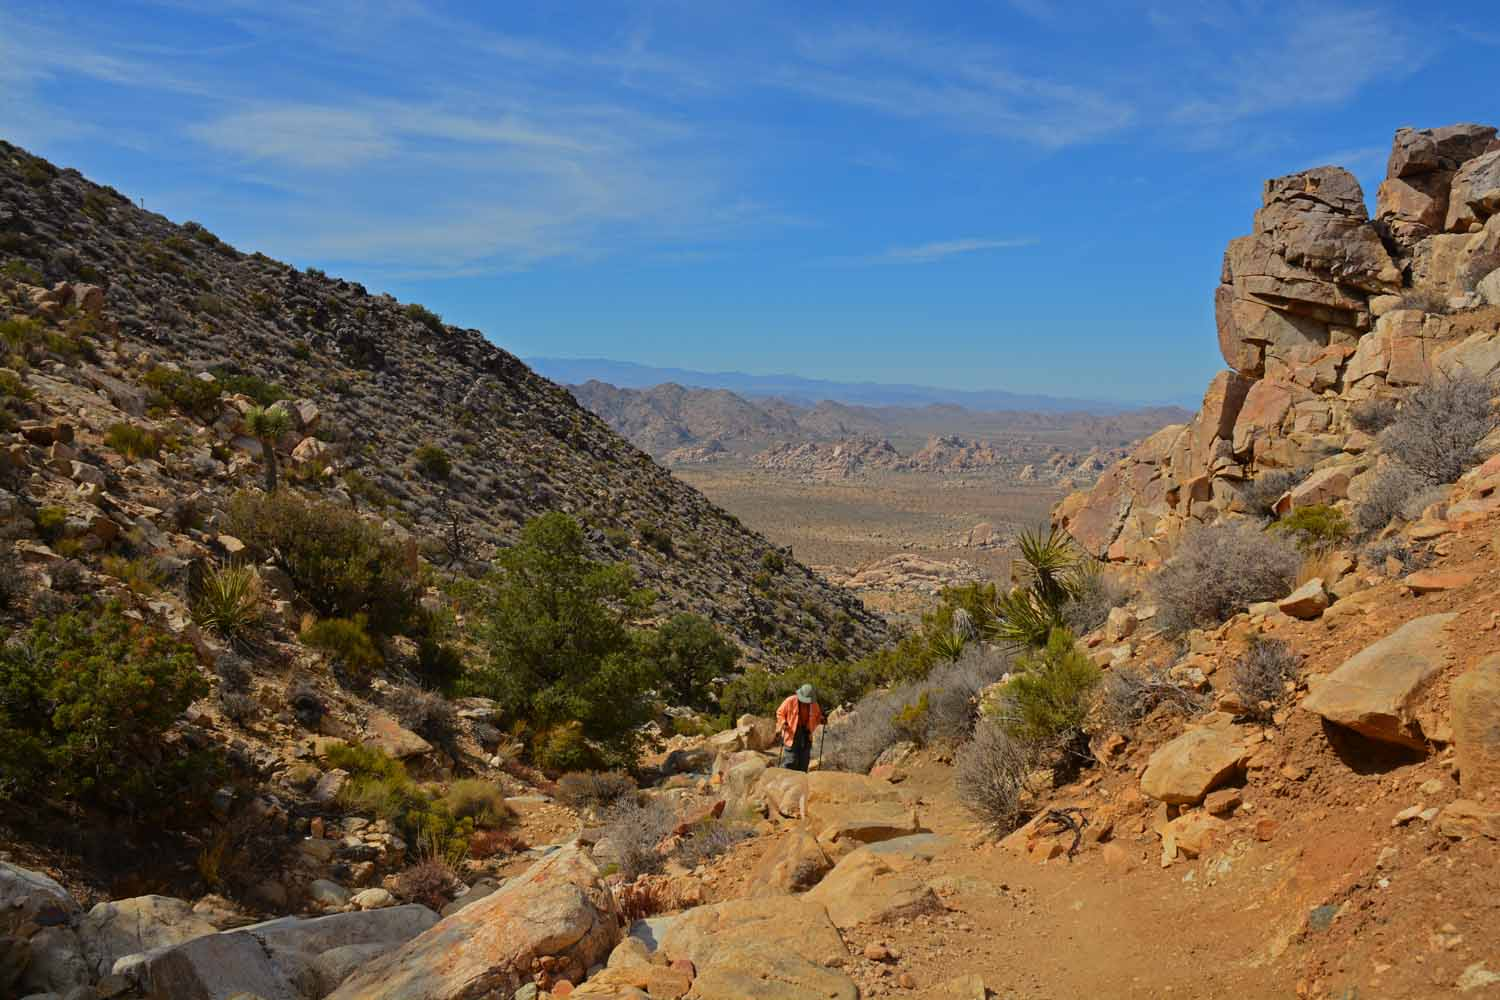 Here is Jan working her way up the Ryan's Mountain Trail...